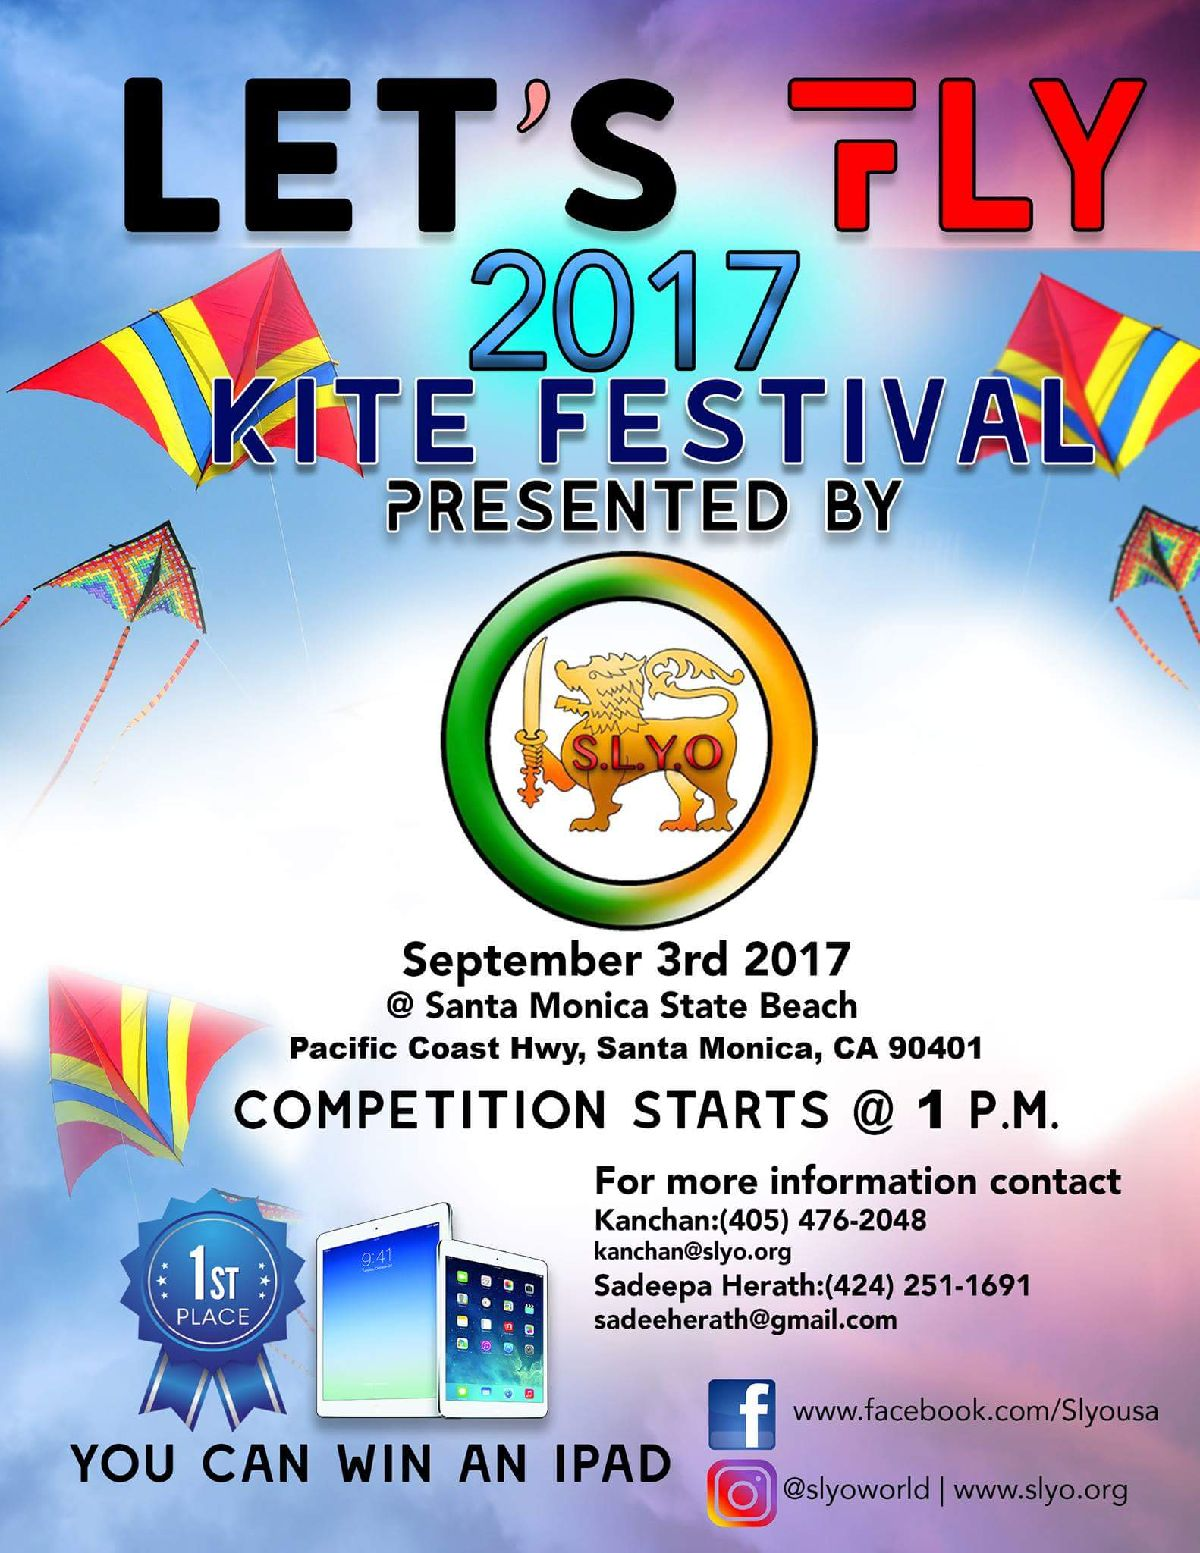 KITE FESTIVAL Presented by Sri Lanka Youth Organization in Los Angeles